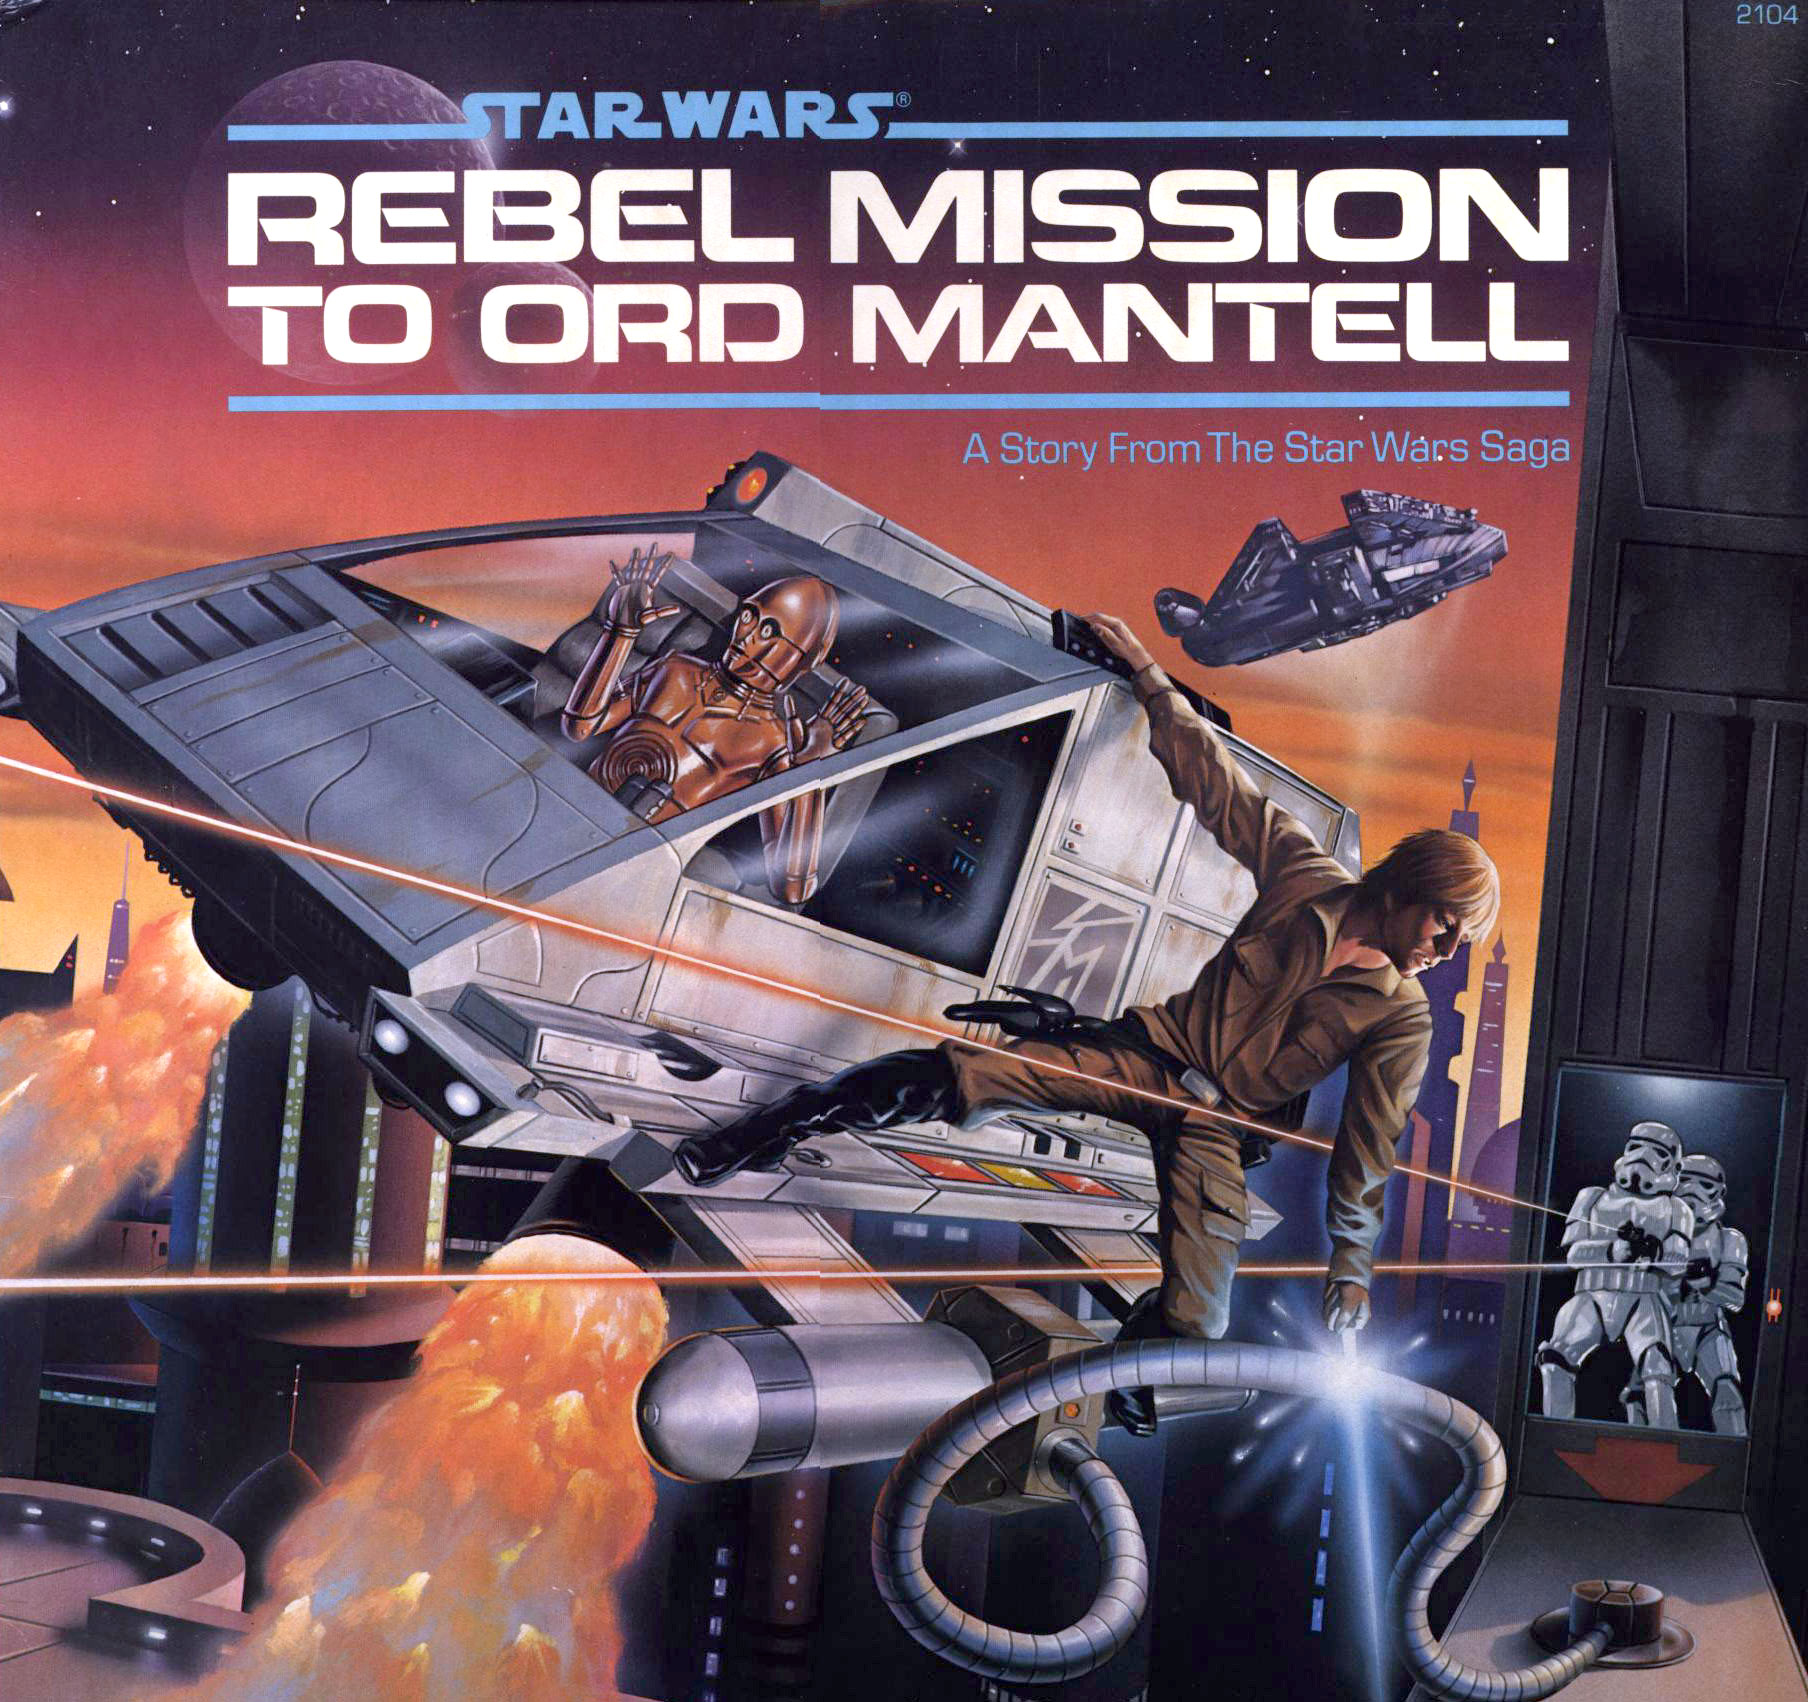 Rebel Mission to Ord Mantell